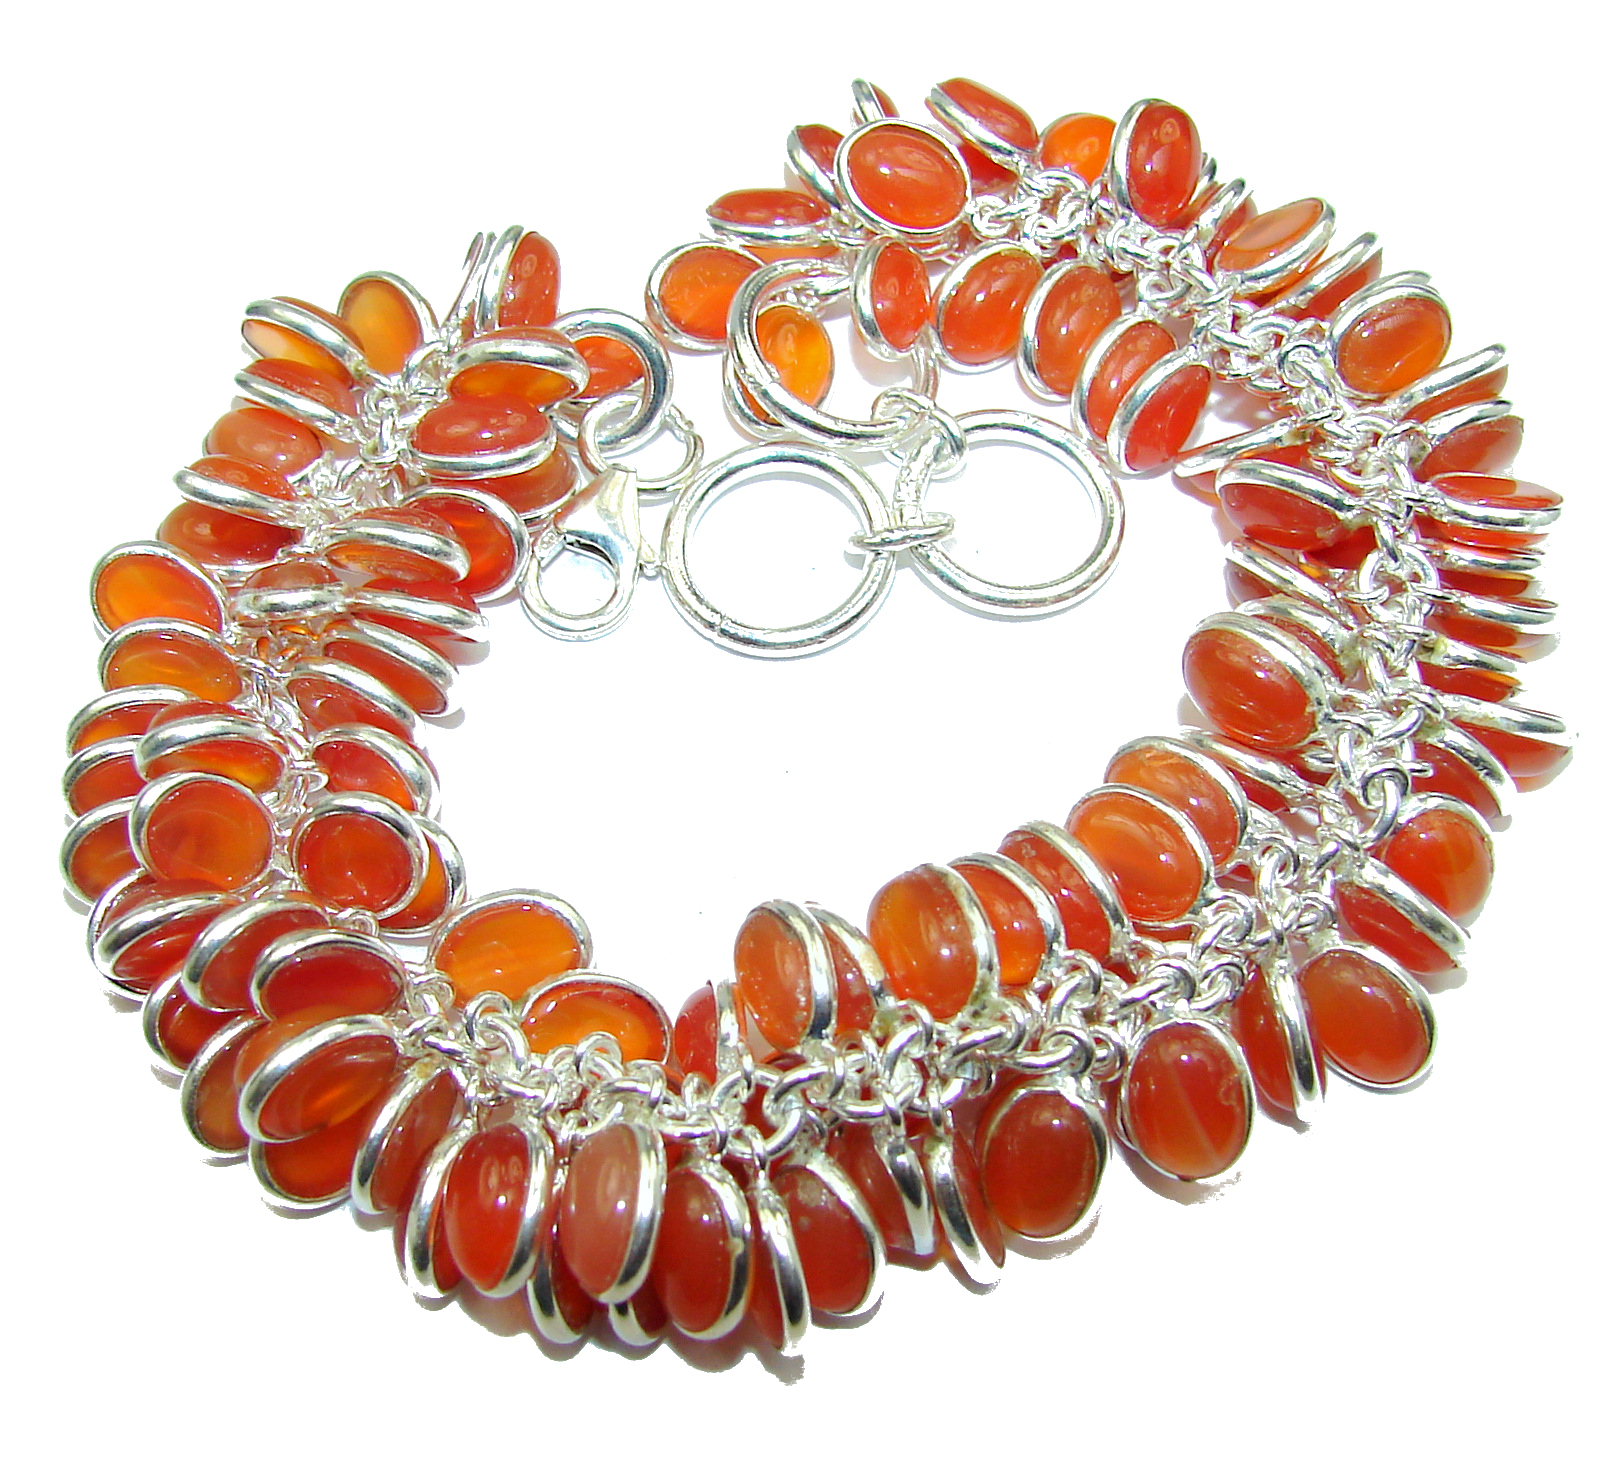 Genuine Carnelian Agate .925 Sterling Silver handcrafted CHA- CHA Bracelet